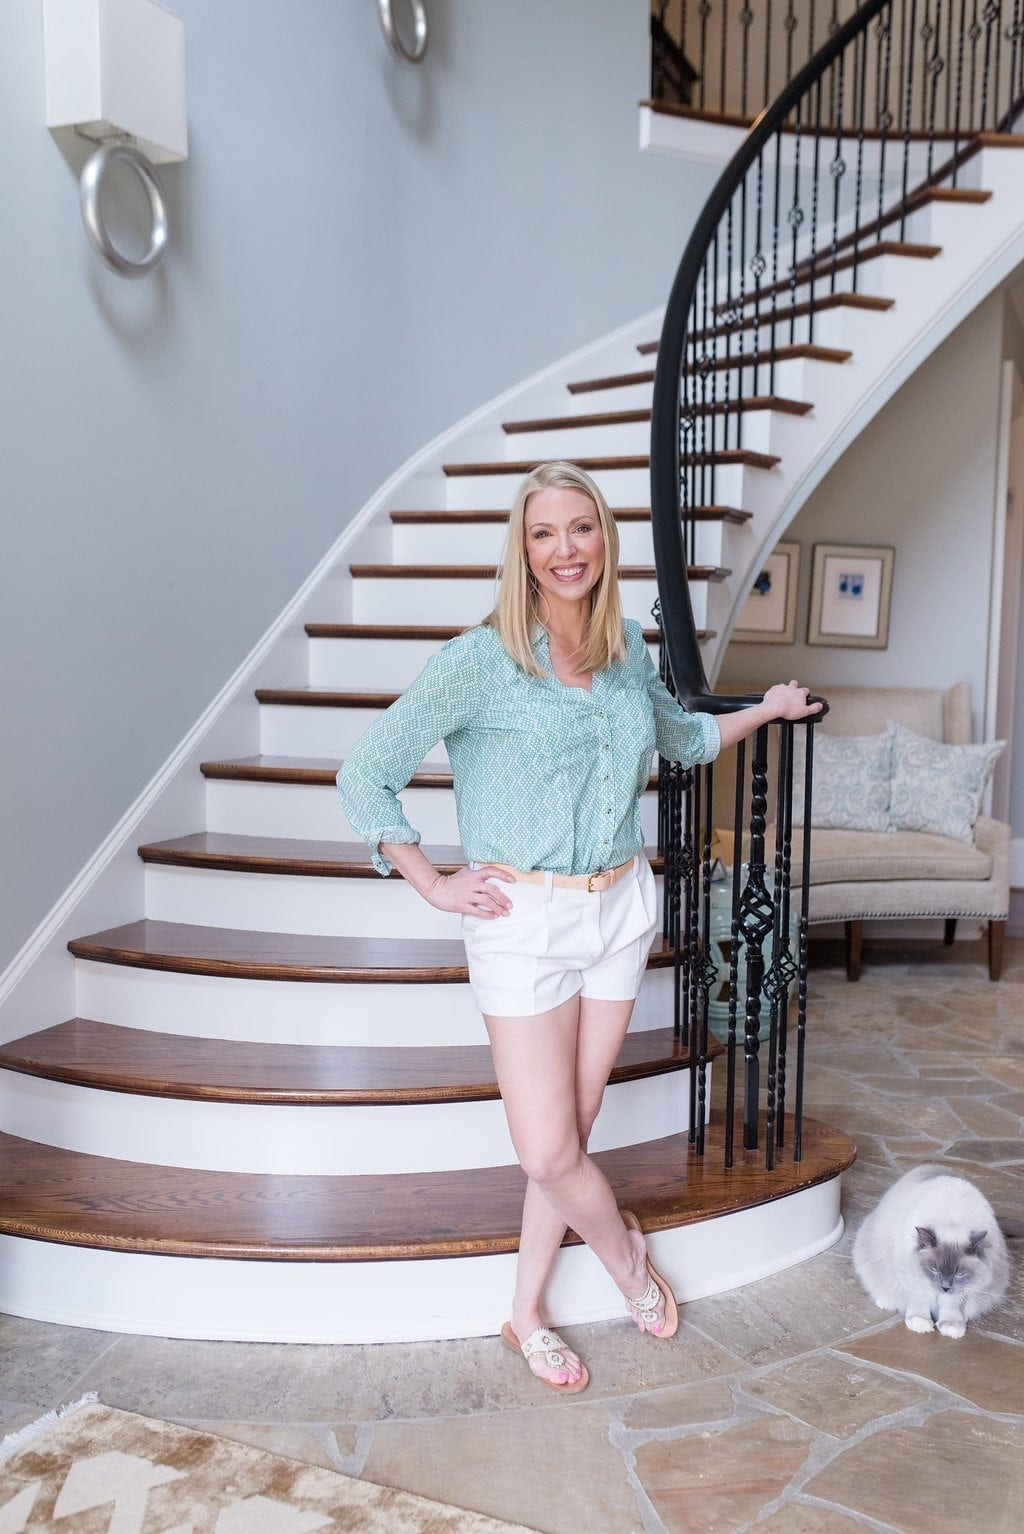 Atlanta home blogger Kelly Page in home entranceway with stone flooring and Stark Carpet.